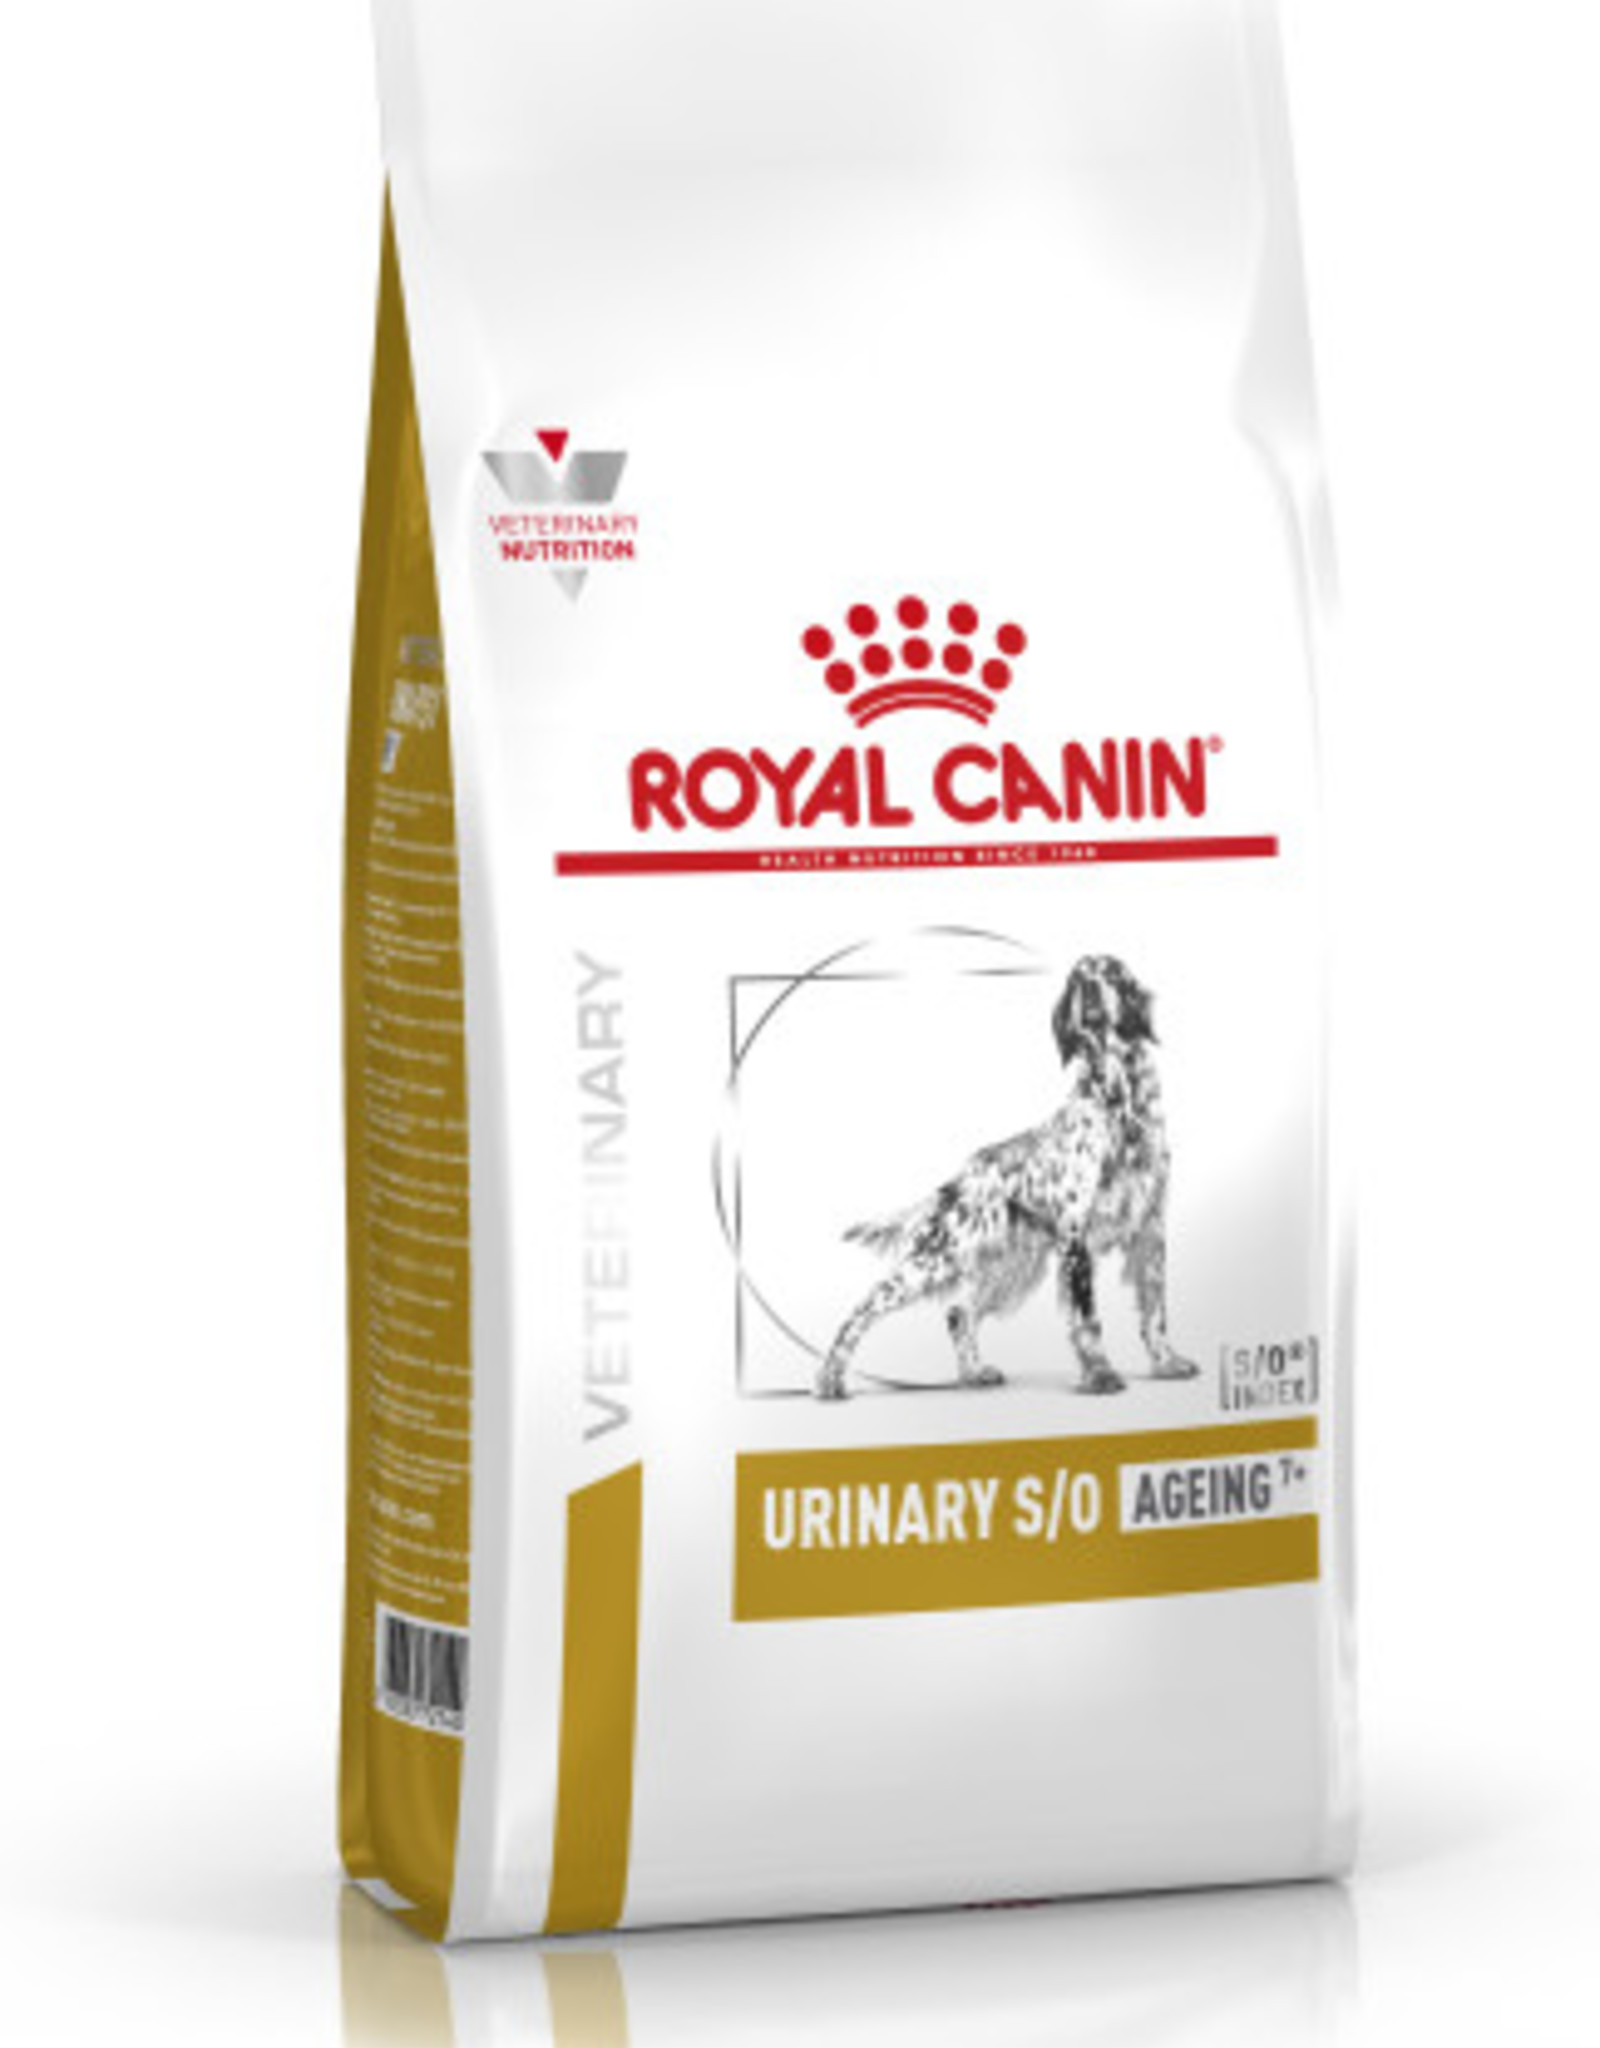 Royal Canin Royal Canin Urinary S/o Ageing Chien 1,5kg